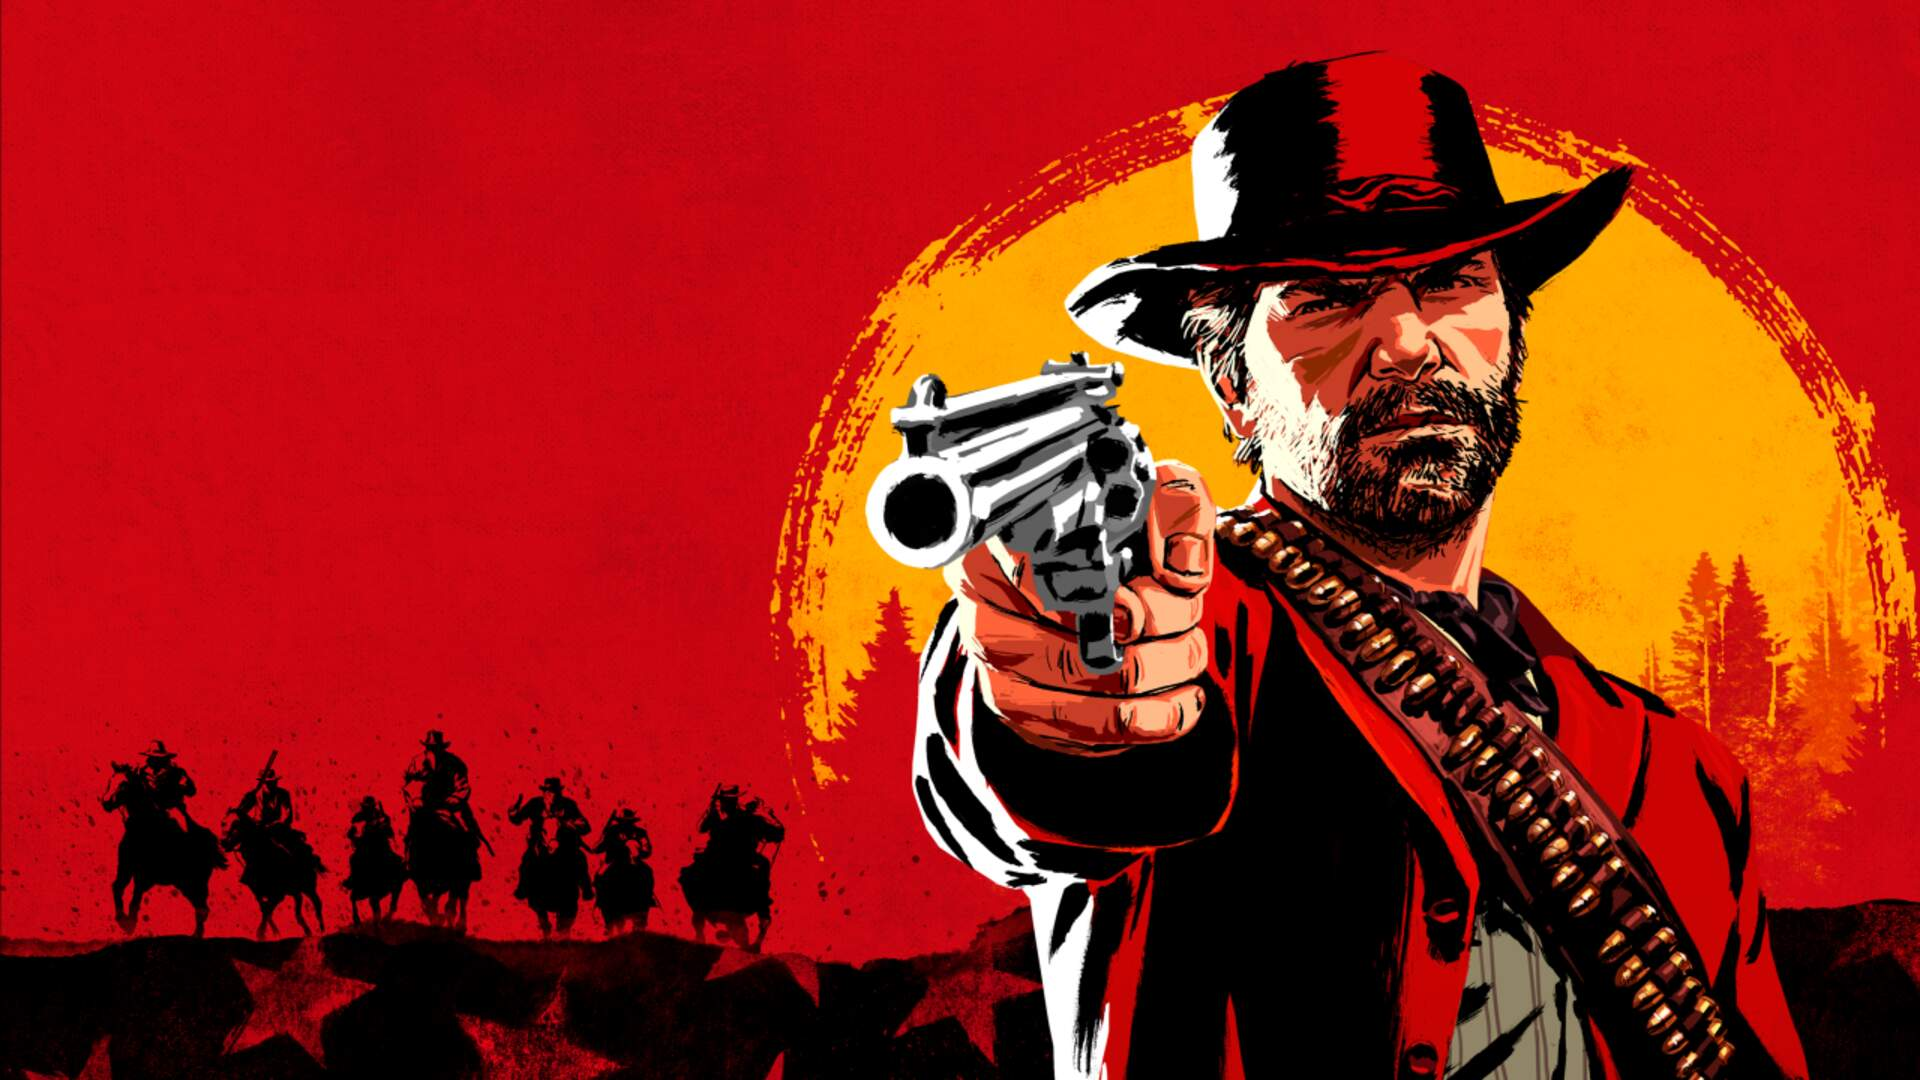 Red Dead Redemption 2 PC Specs: Recommended and Minimum Settings